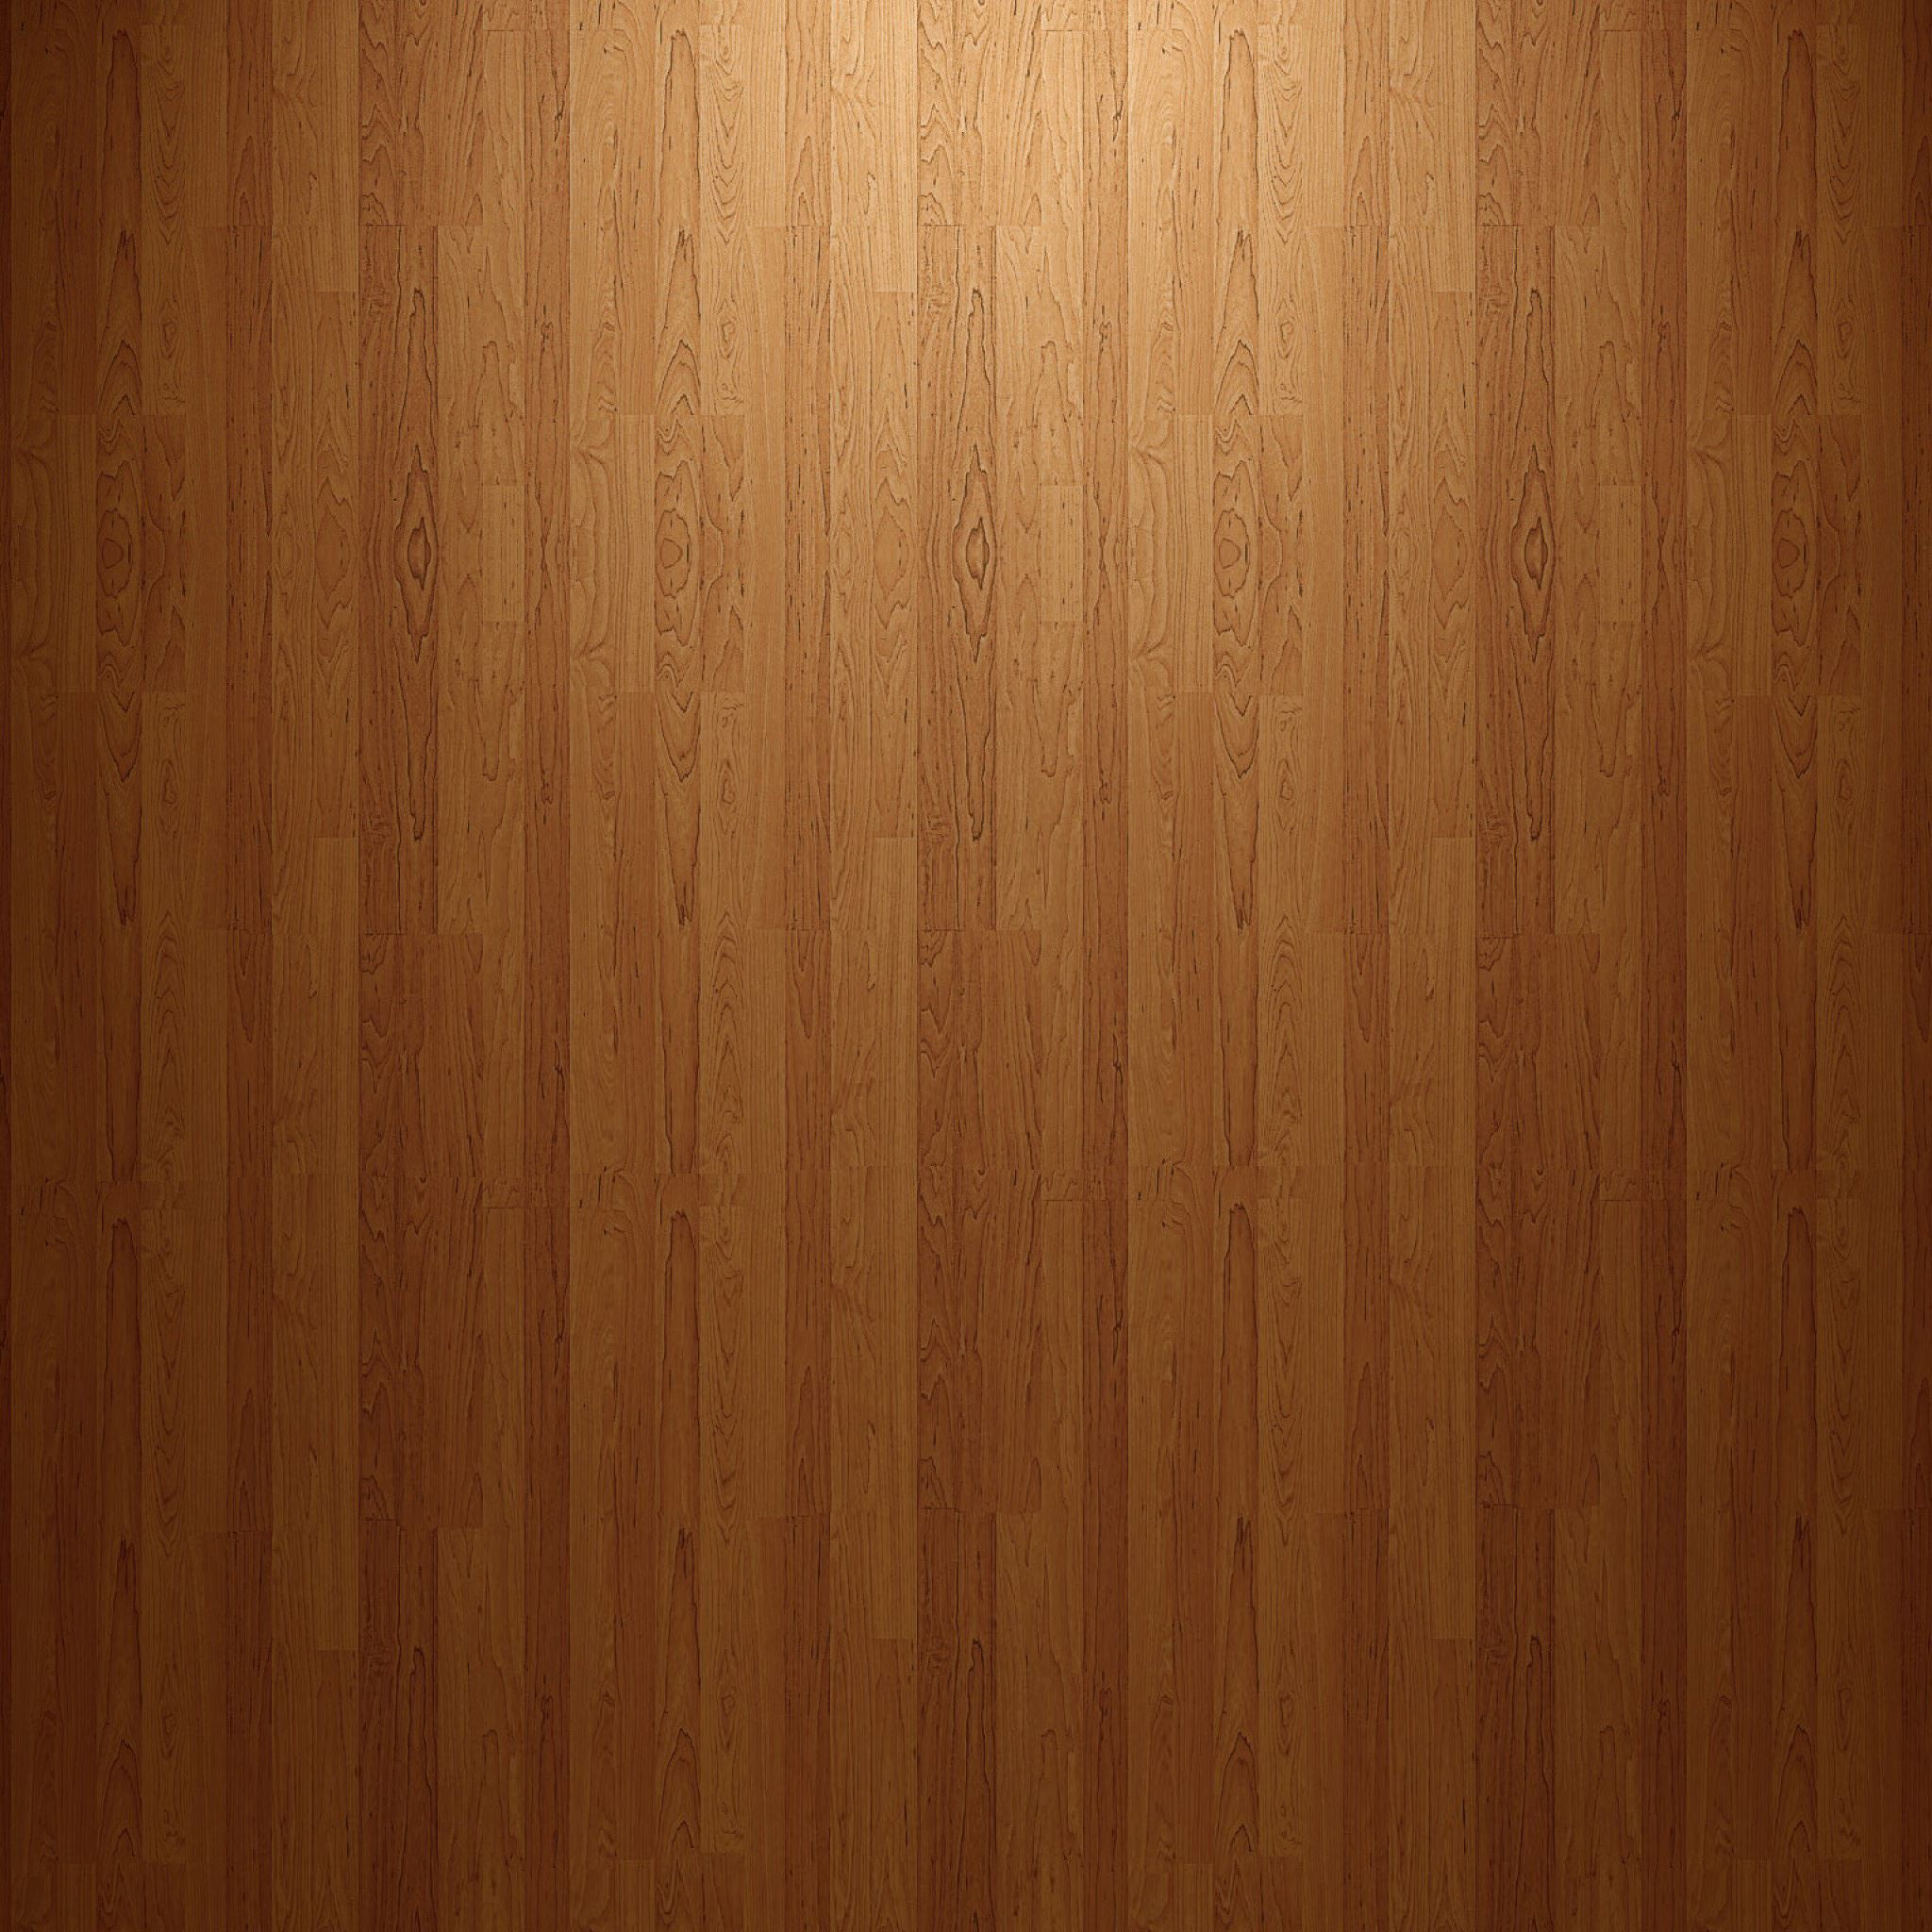 Wood Panel iPad Air wallpaper